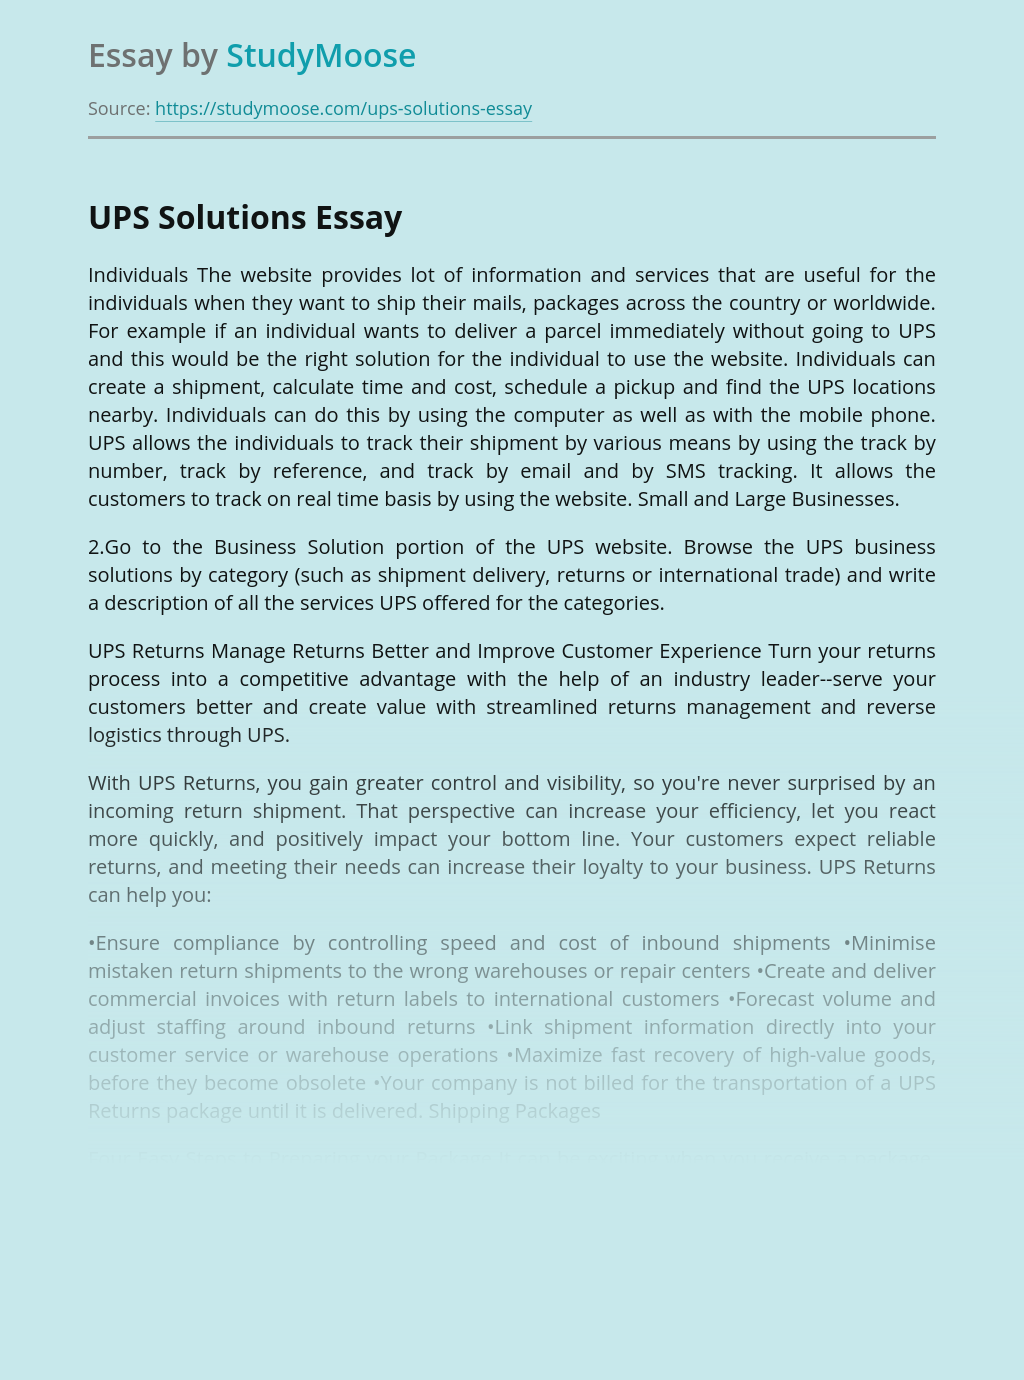 UPS Solutions Website for Business